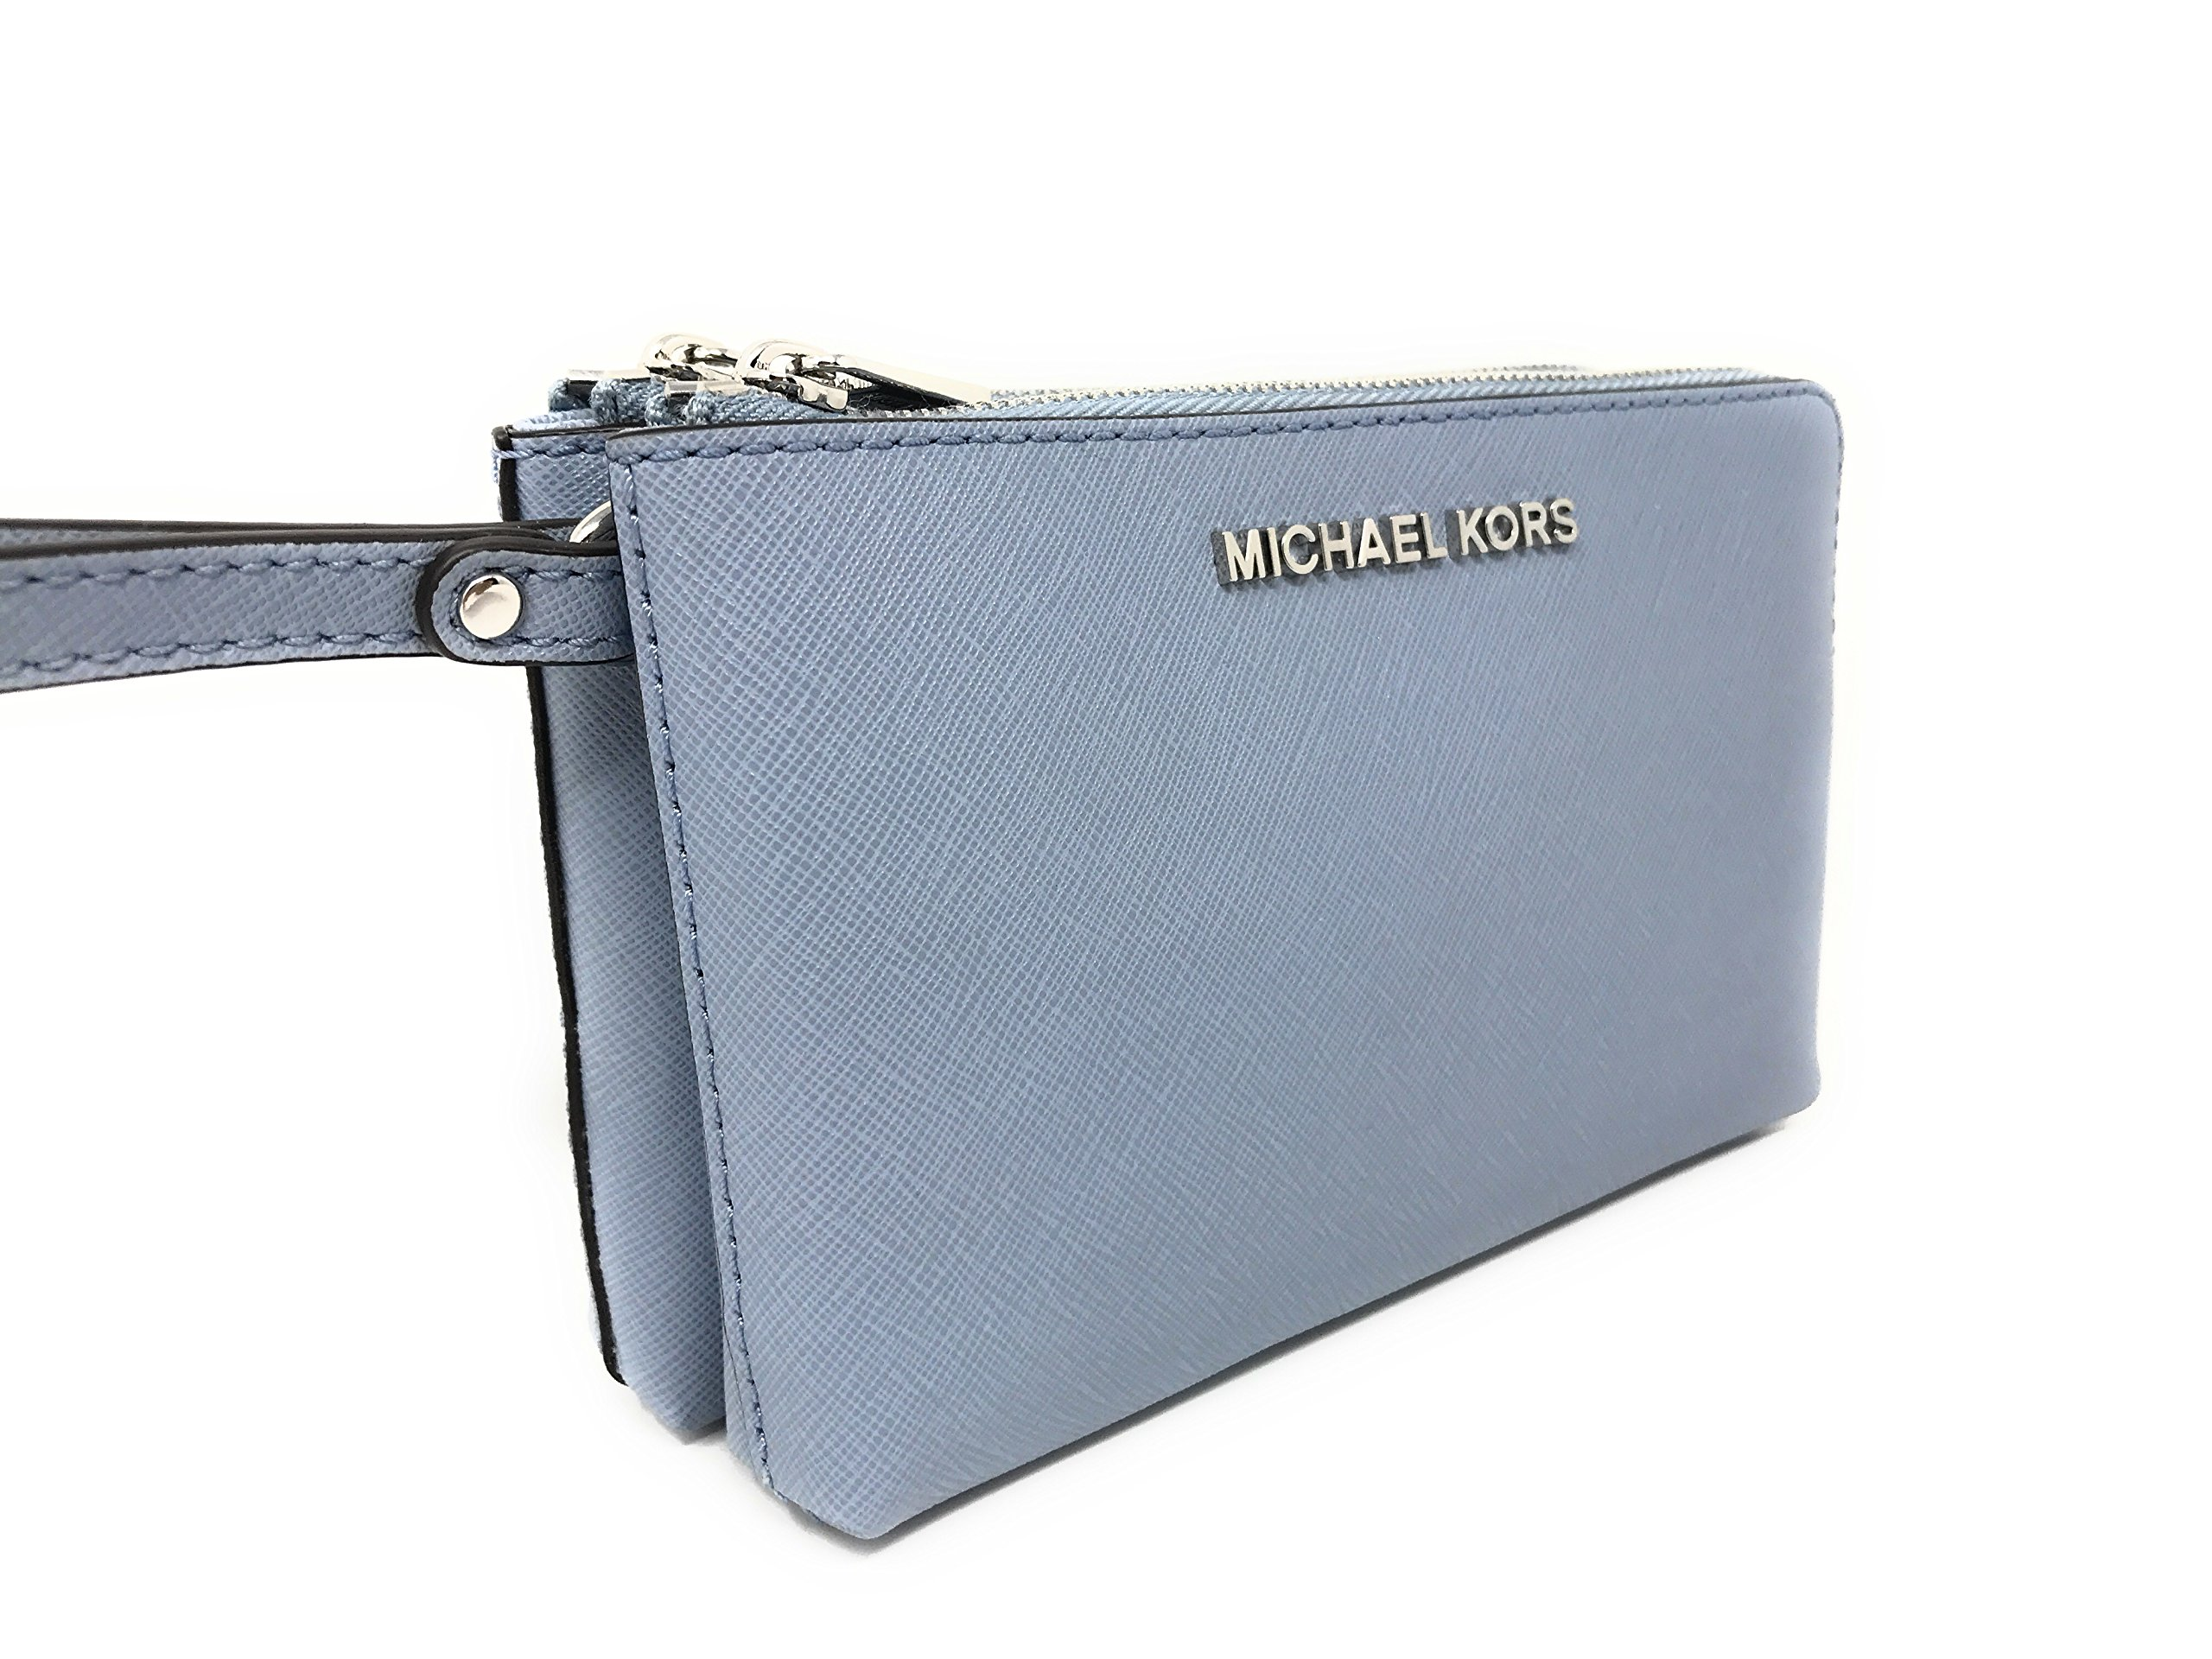 Michael Kors Jet Set Travel Large Double Gusset Wristlet Bag Purse in Pale Blue by Michael Kors (Image #4)